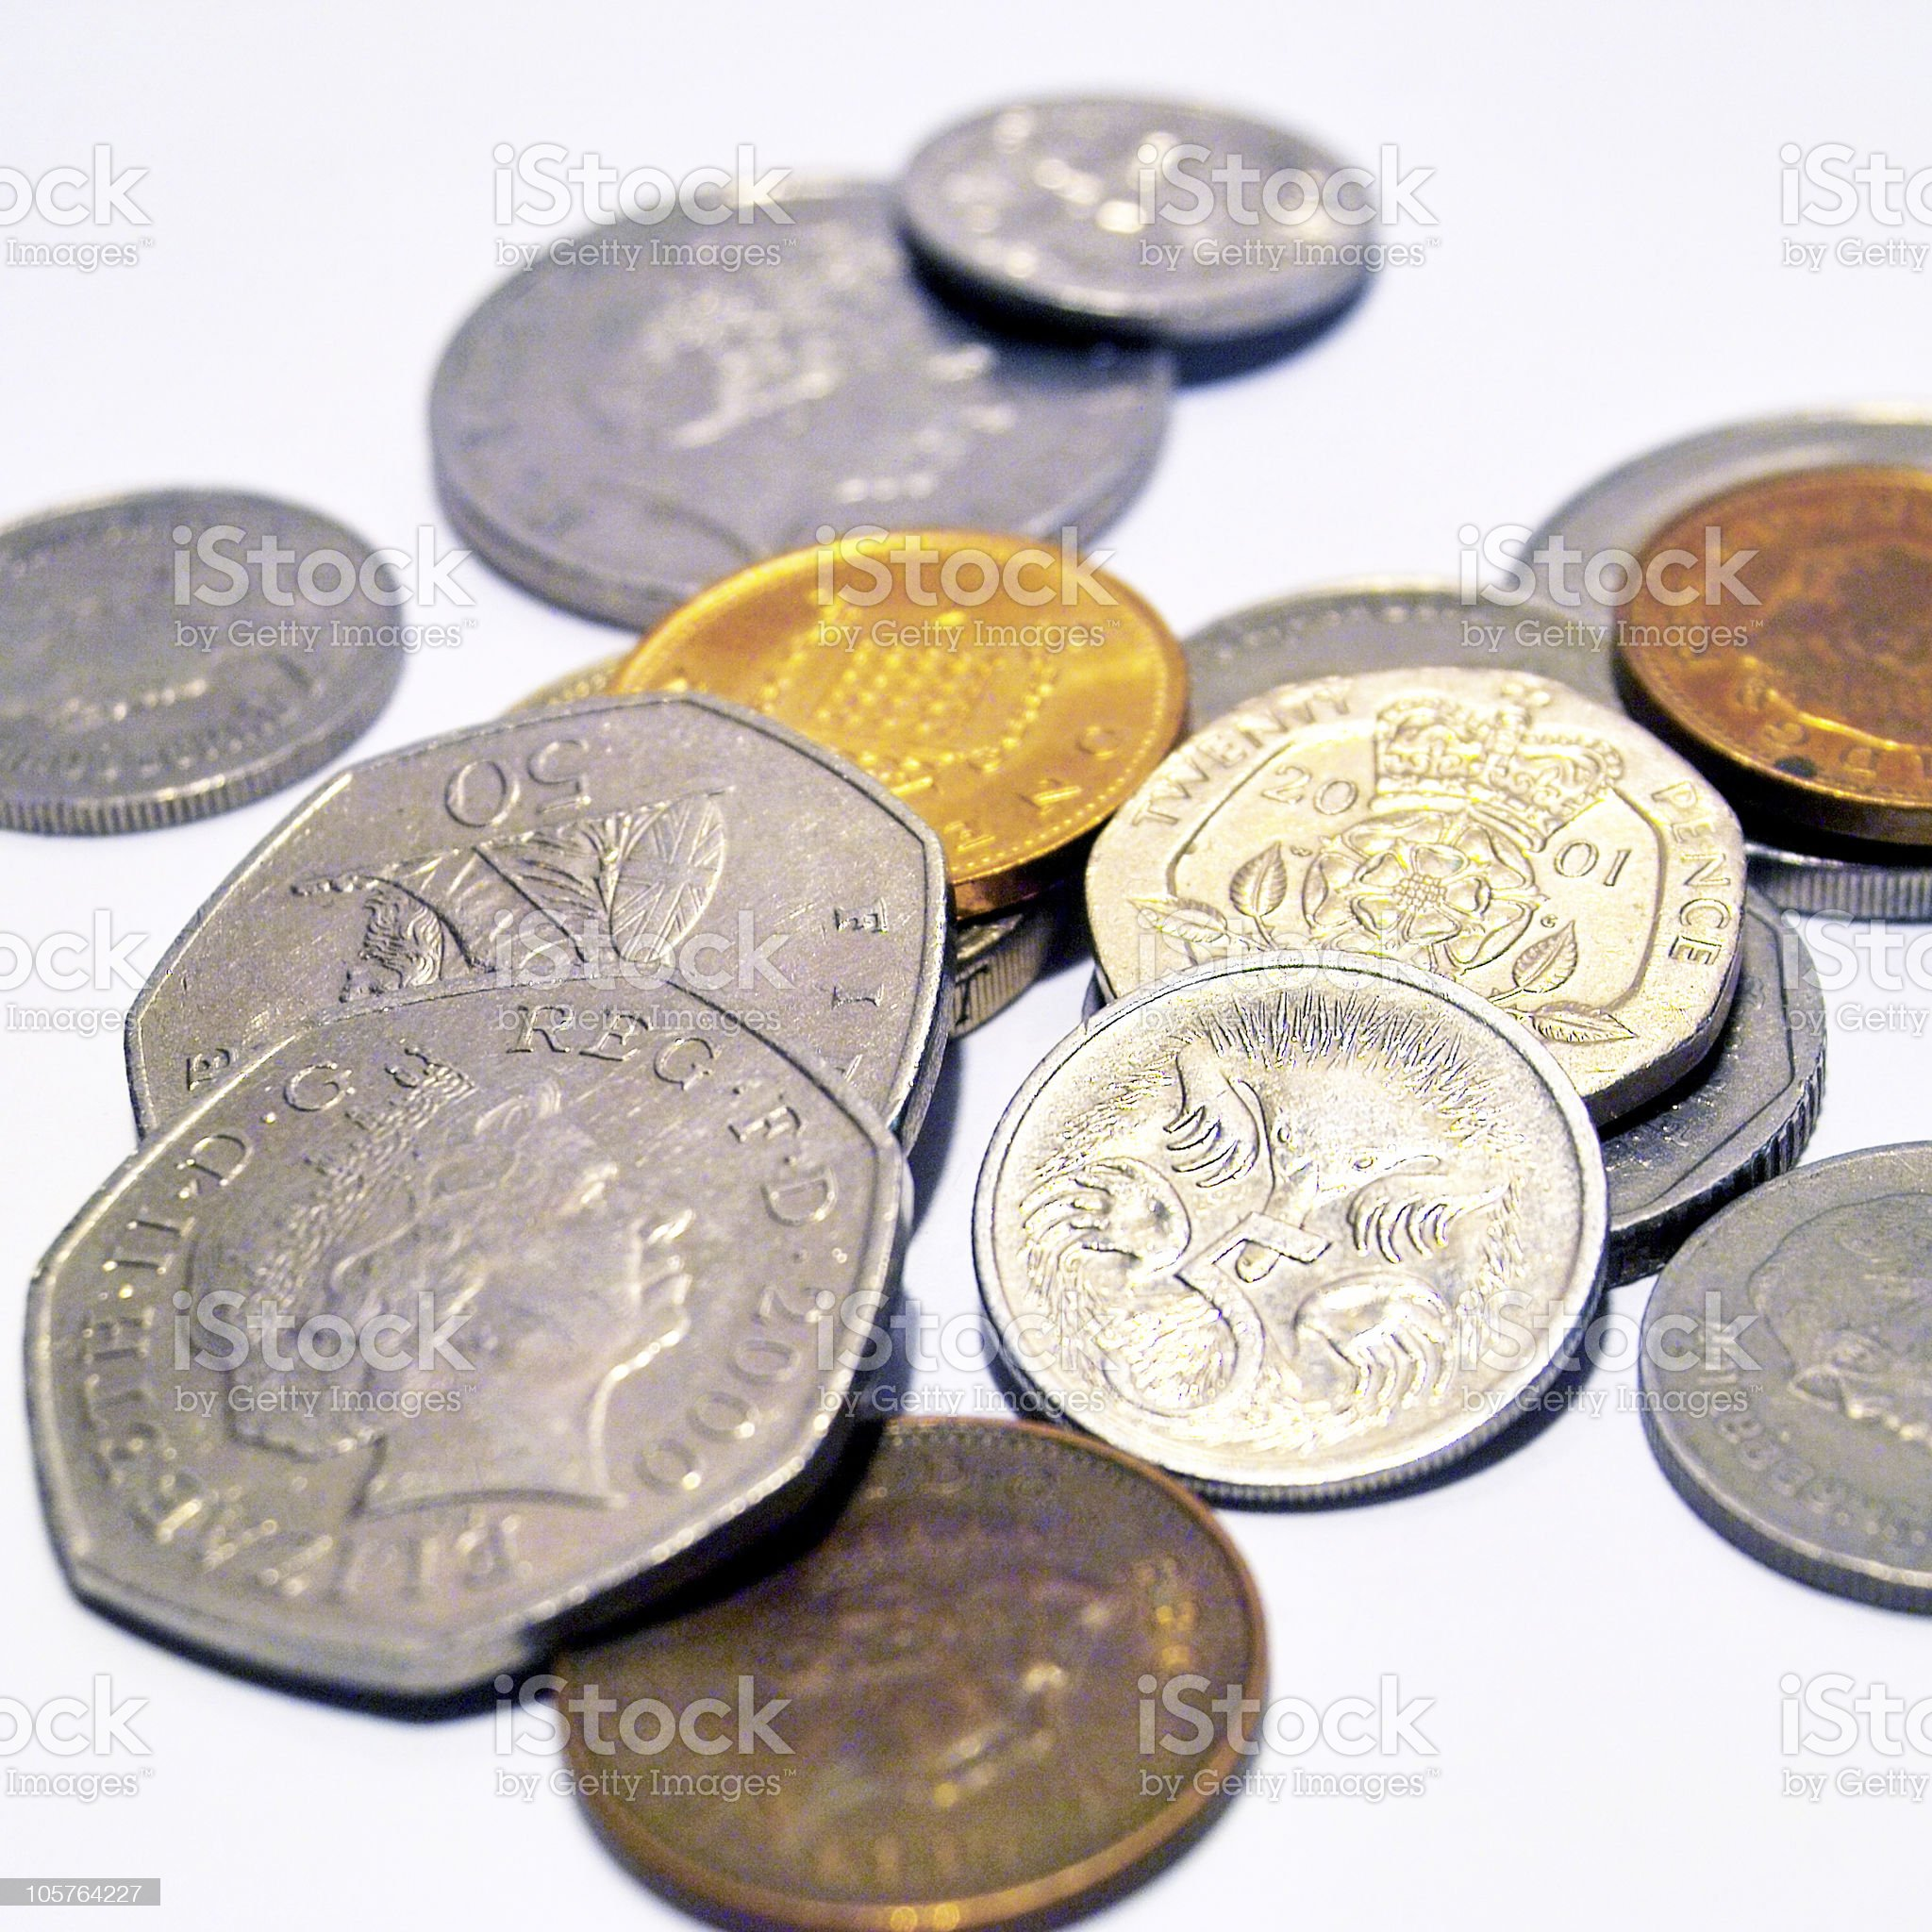 Stack of coins royalty-free stock photo